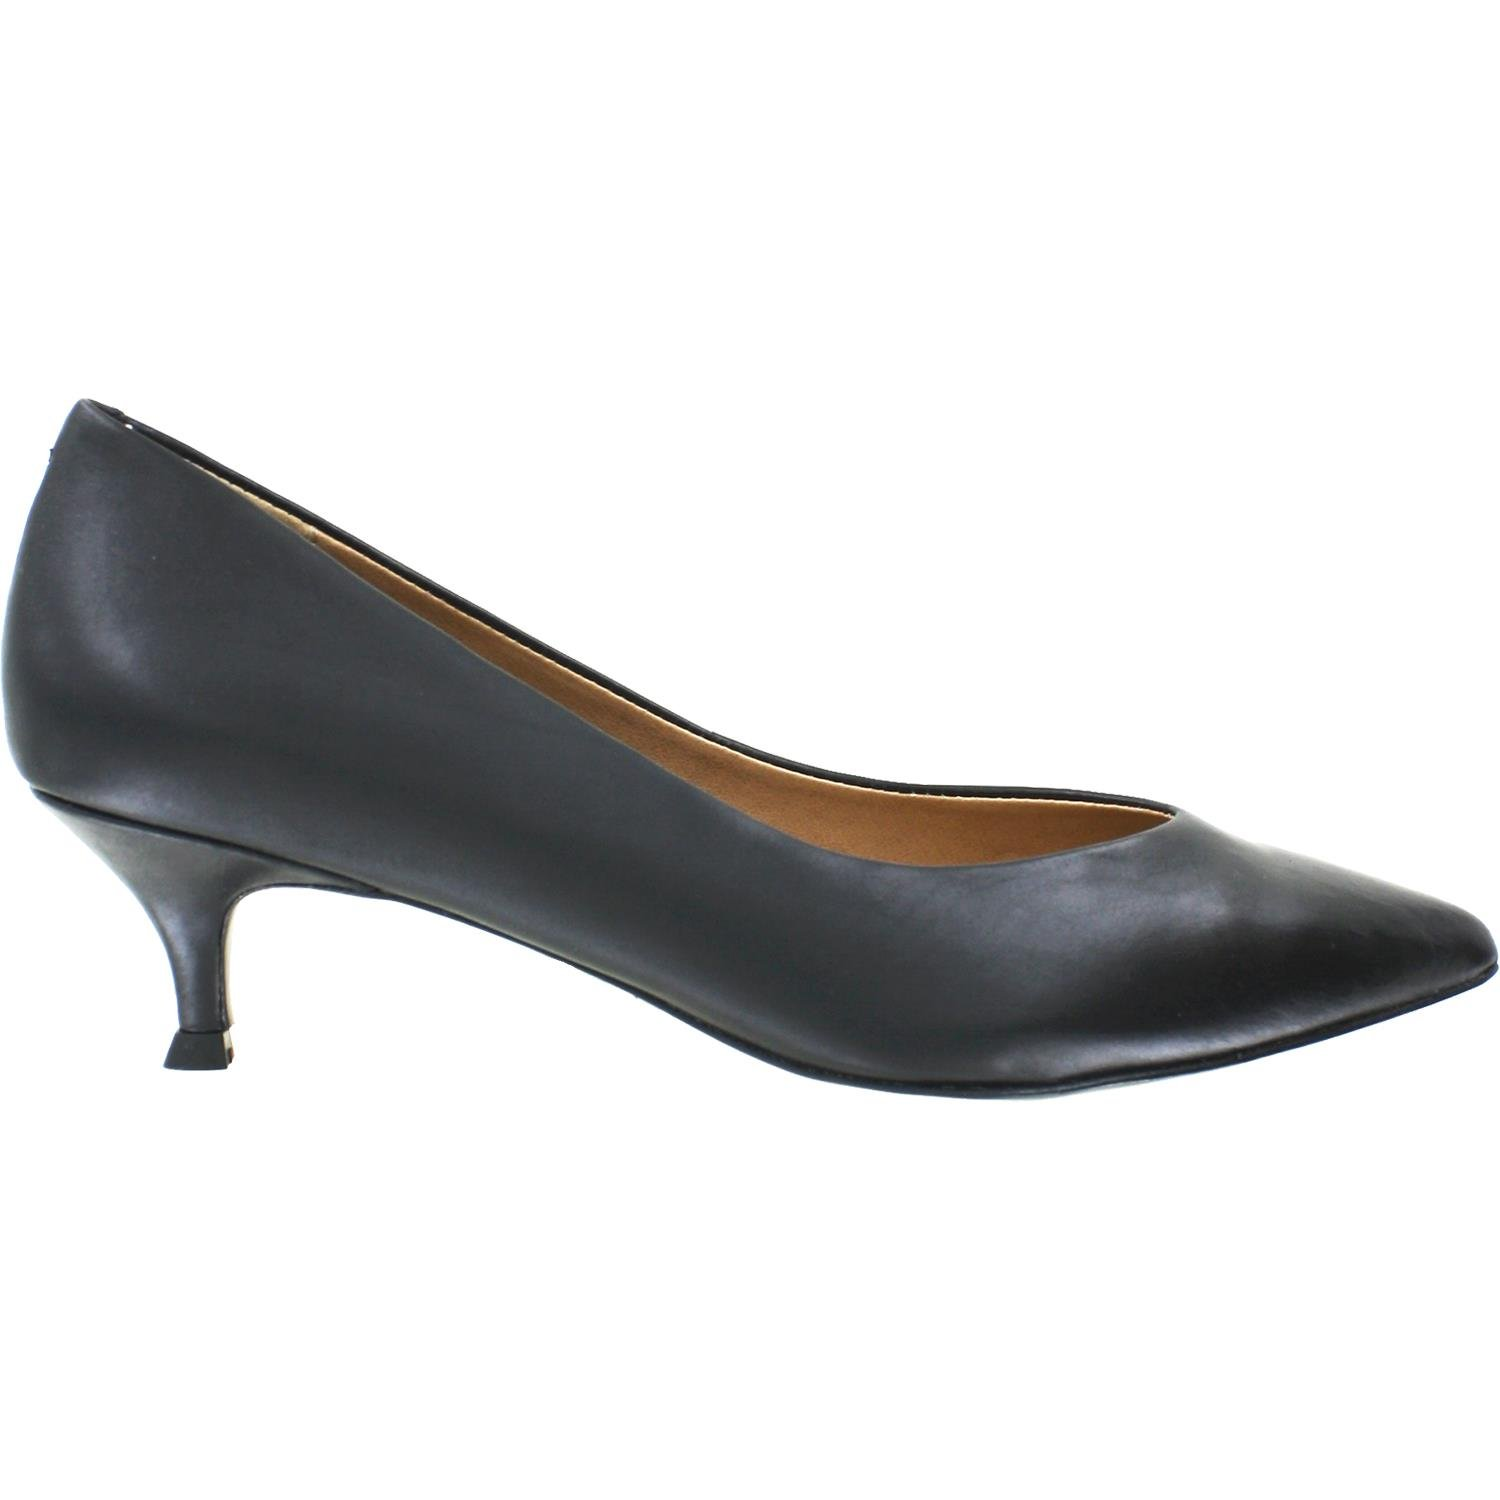 Vionic Womens Josie Kitten Heel Black Pump - 8.5 M by Vionic